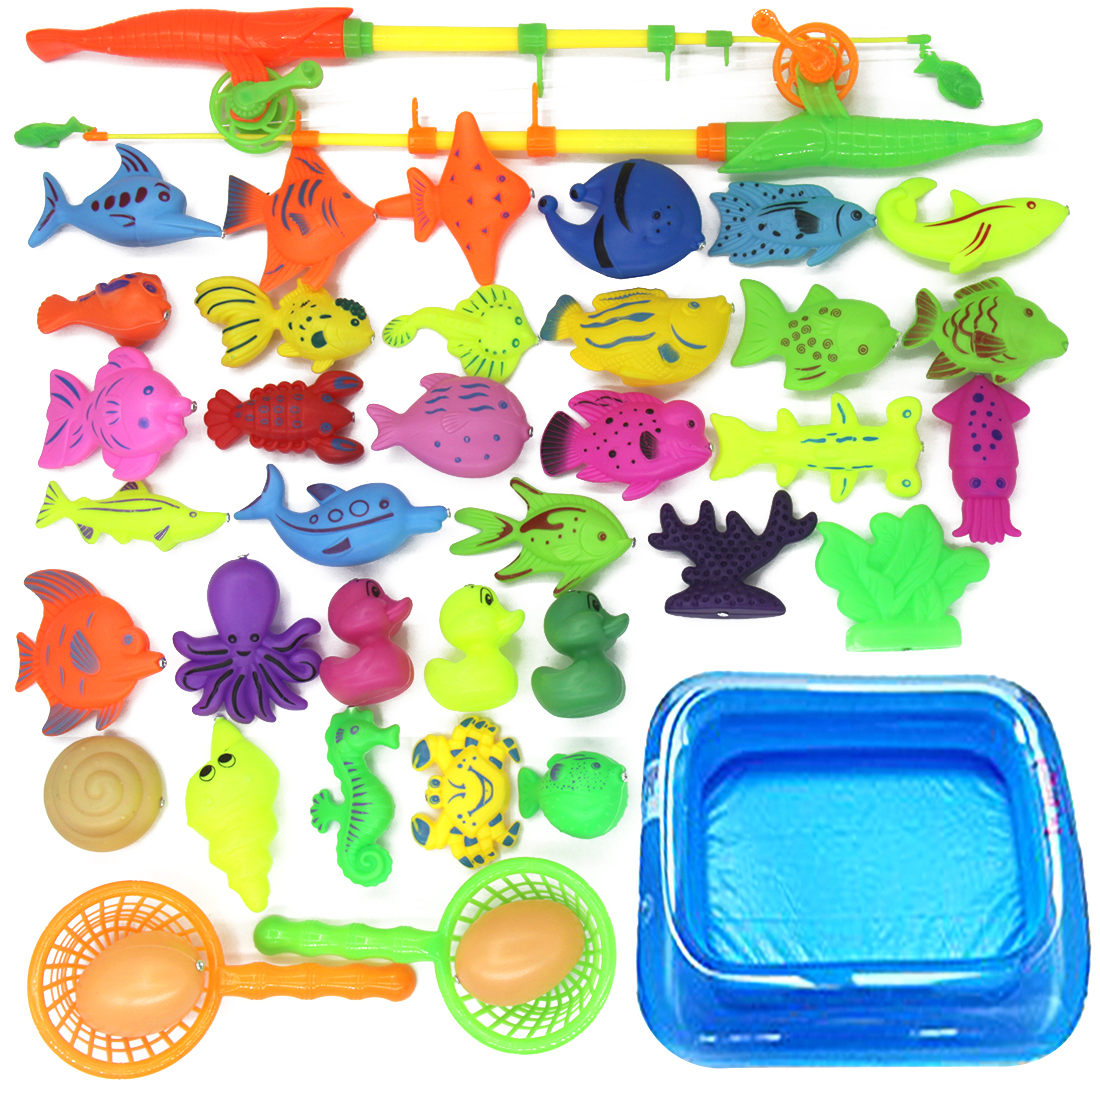 10pcs Fish Magnetic Fishing Toy Rod Net Set For Kids Child Model Play Fishing Games Outdoor Toys Inflatable Pool Air Pump